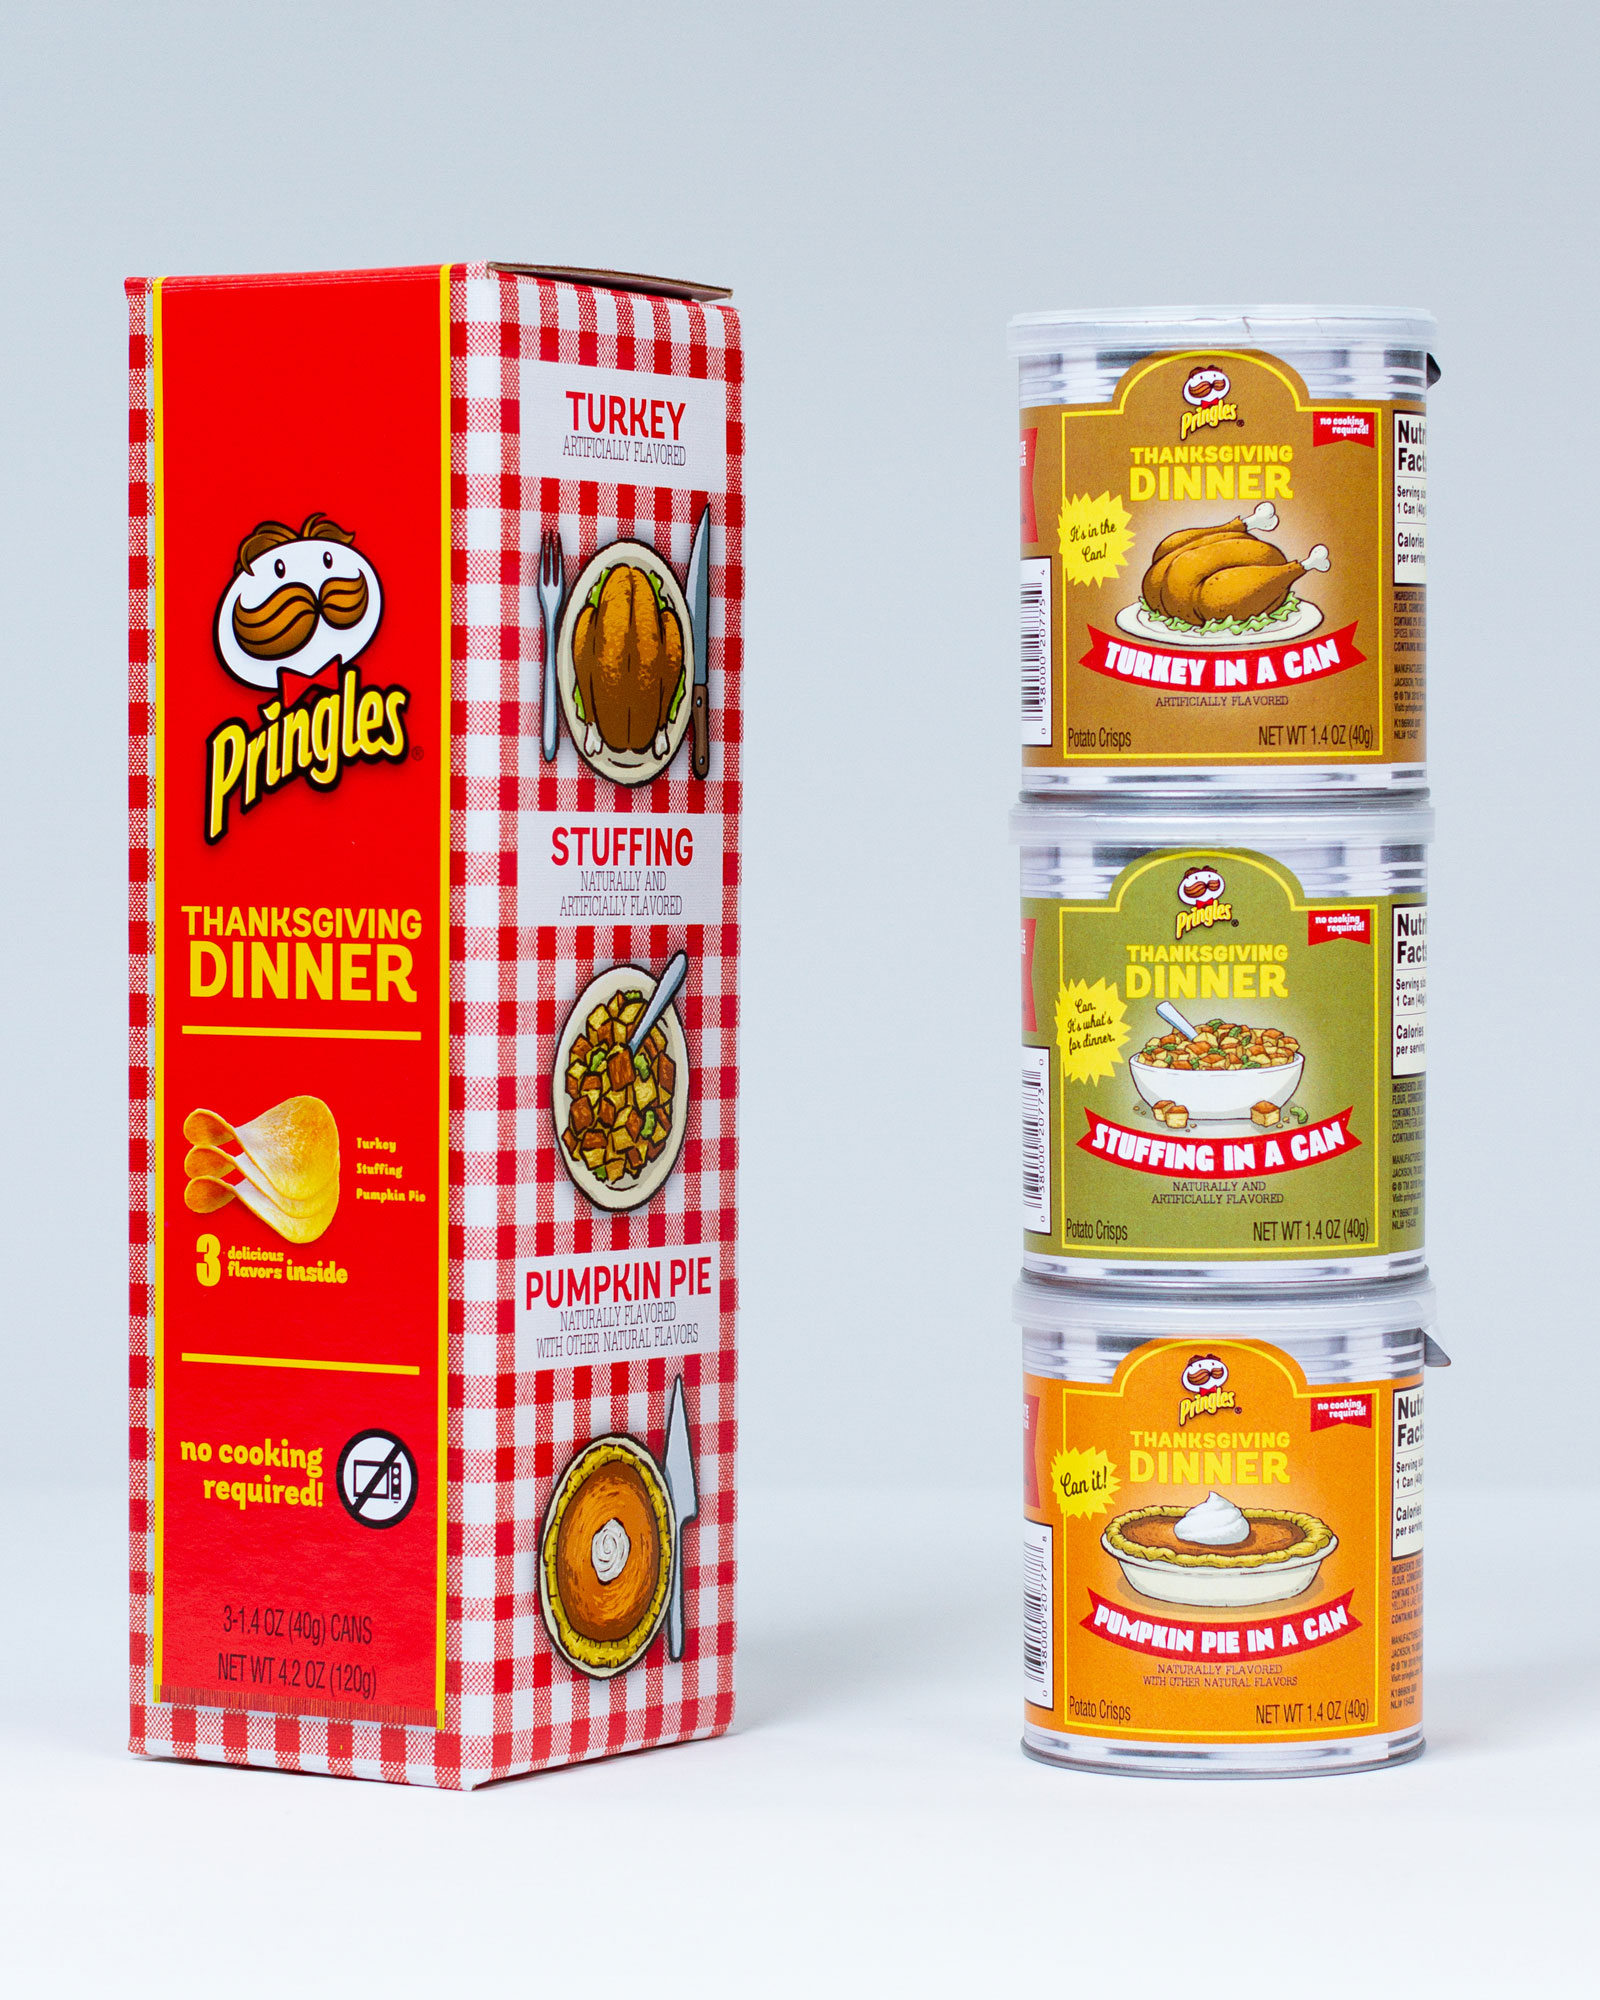 pringles-thanksgiving-XL-BLOG1118.jpg